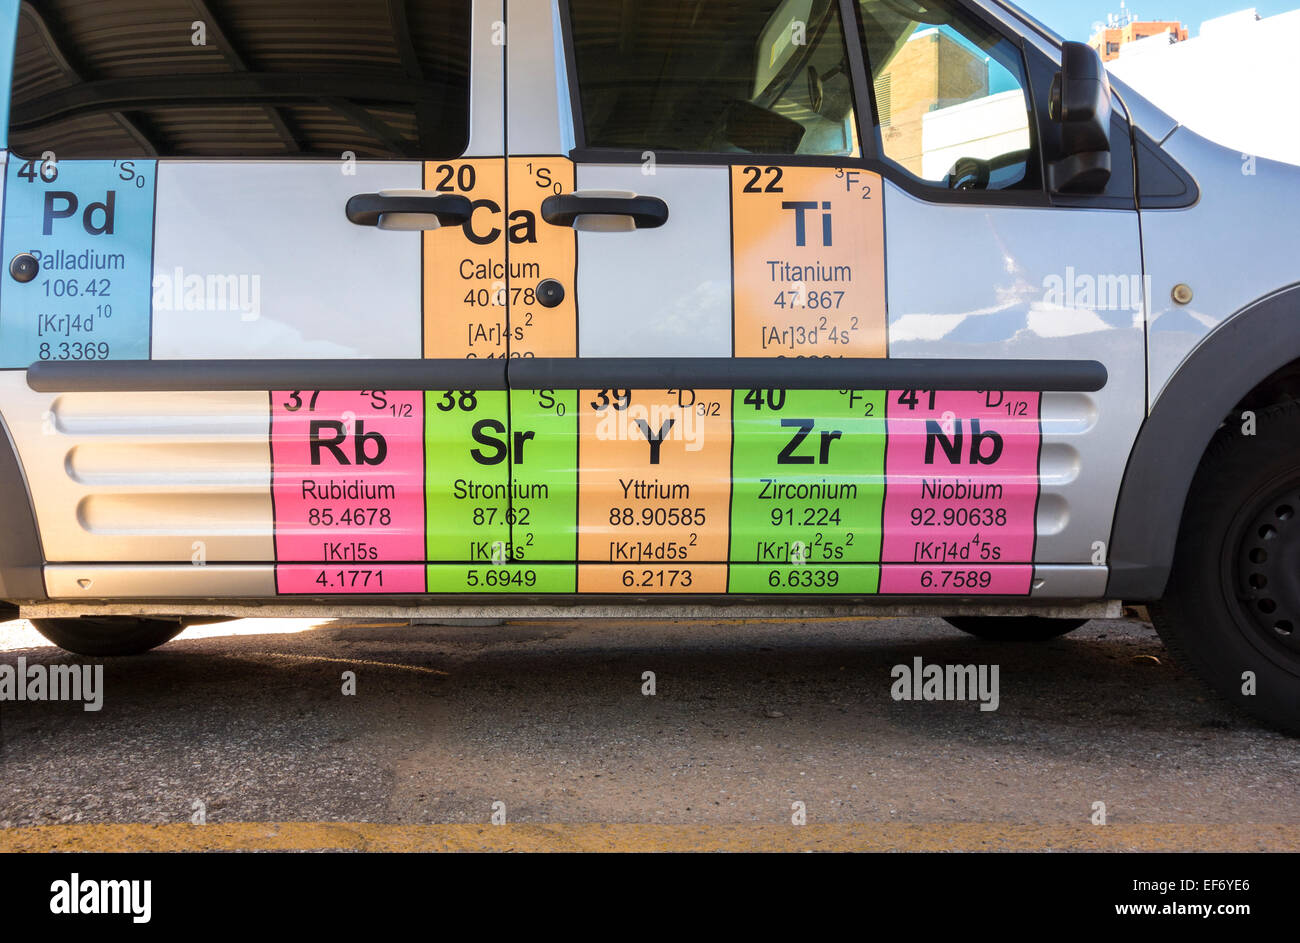 Mendelejews Periodensystem der Elemente auf der Seite ein Auto das Maryland Science Center in Baltimore MD. Stockbild